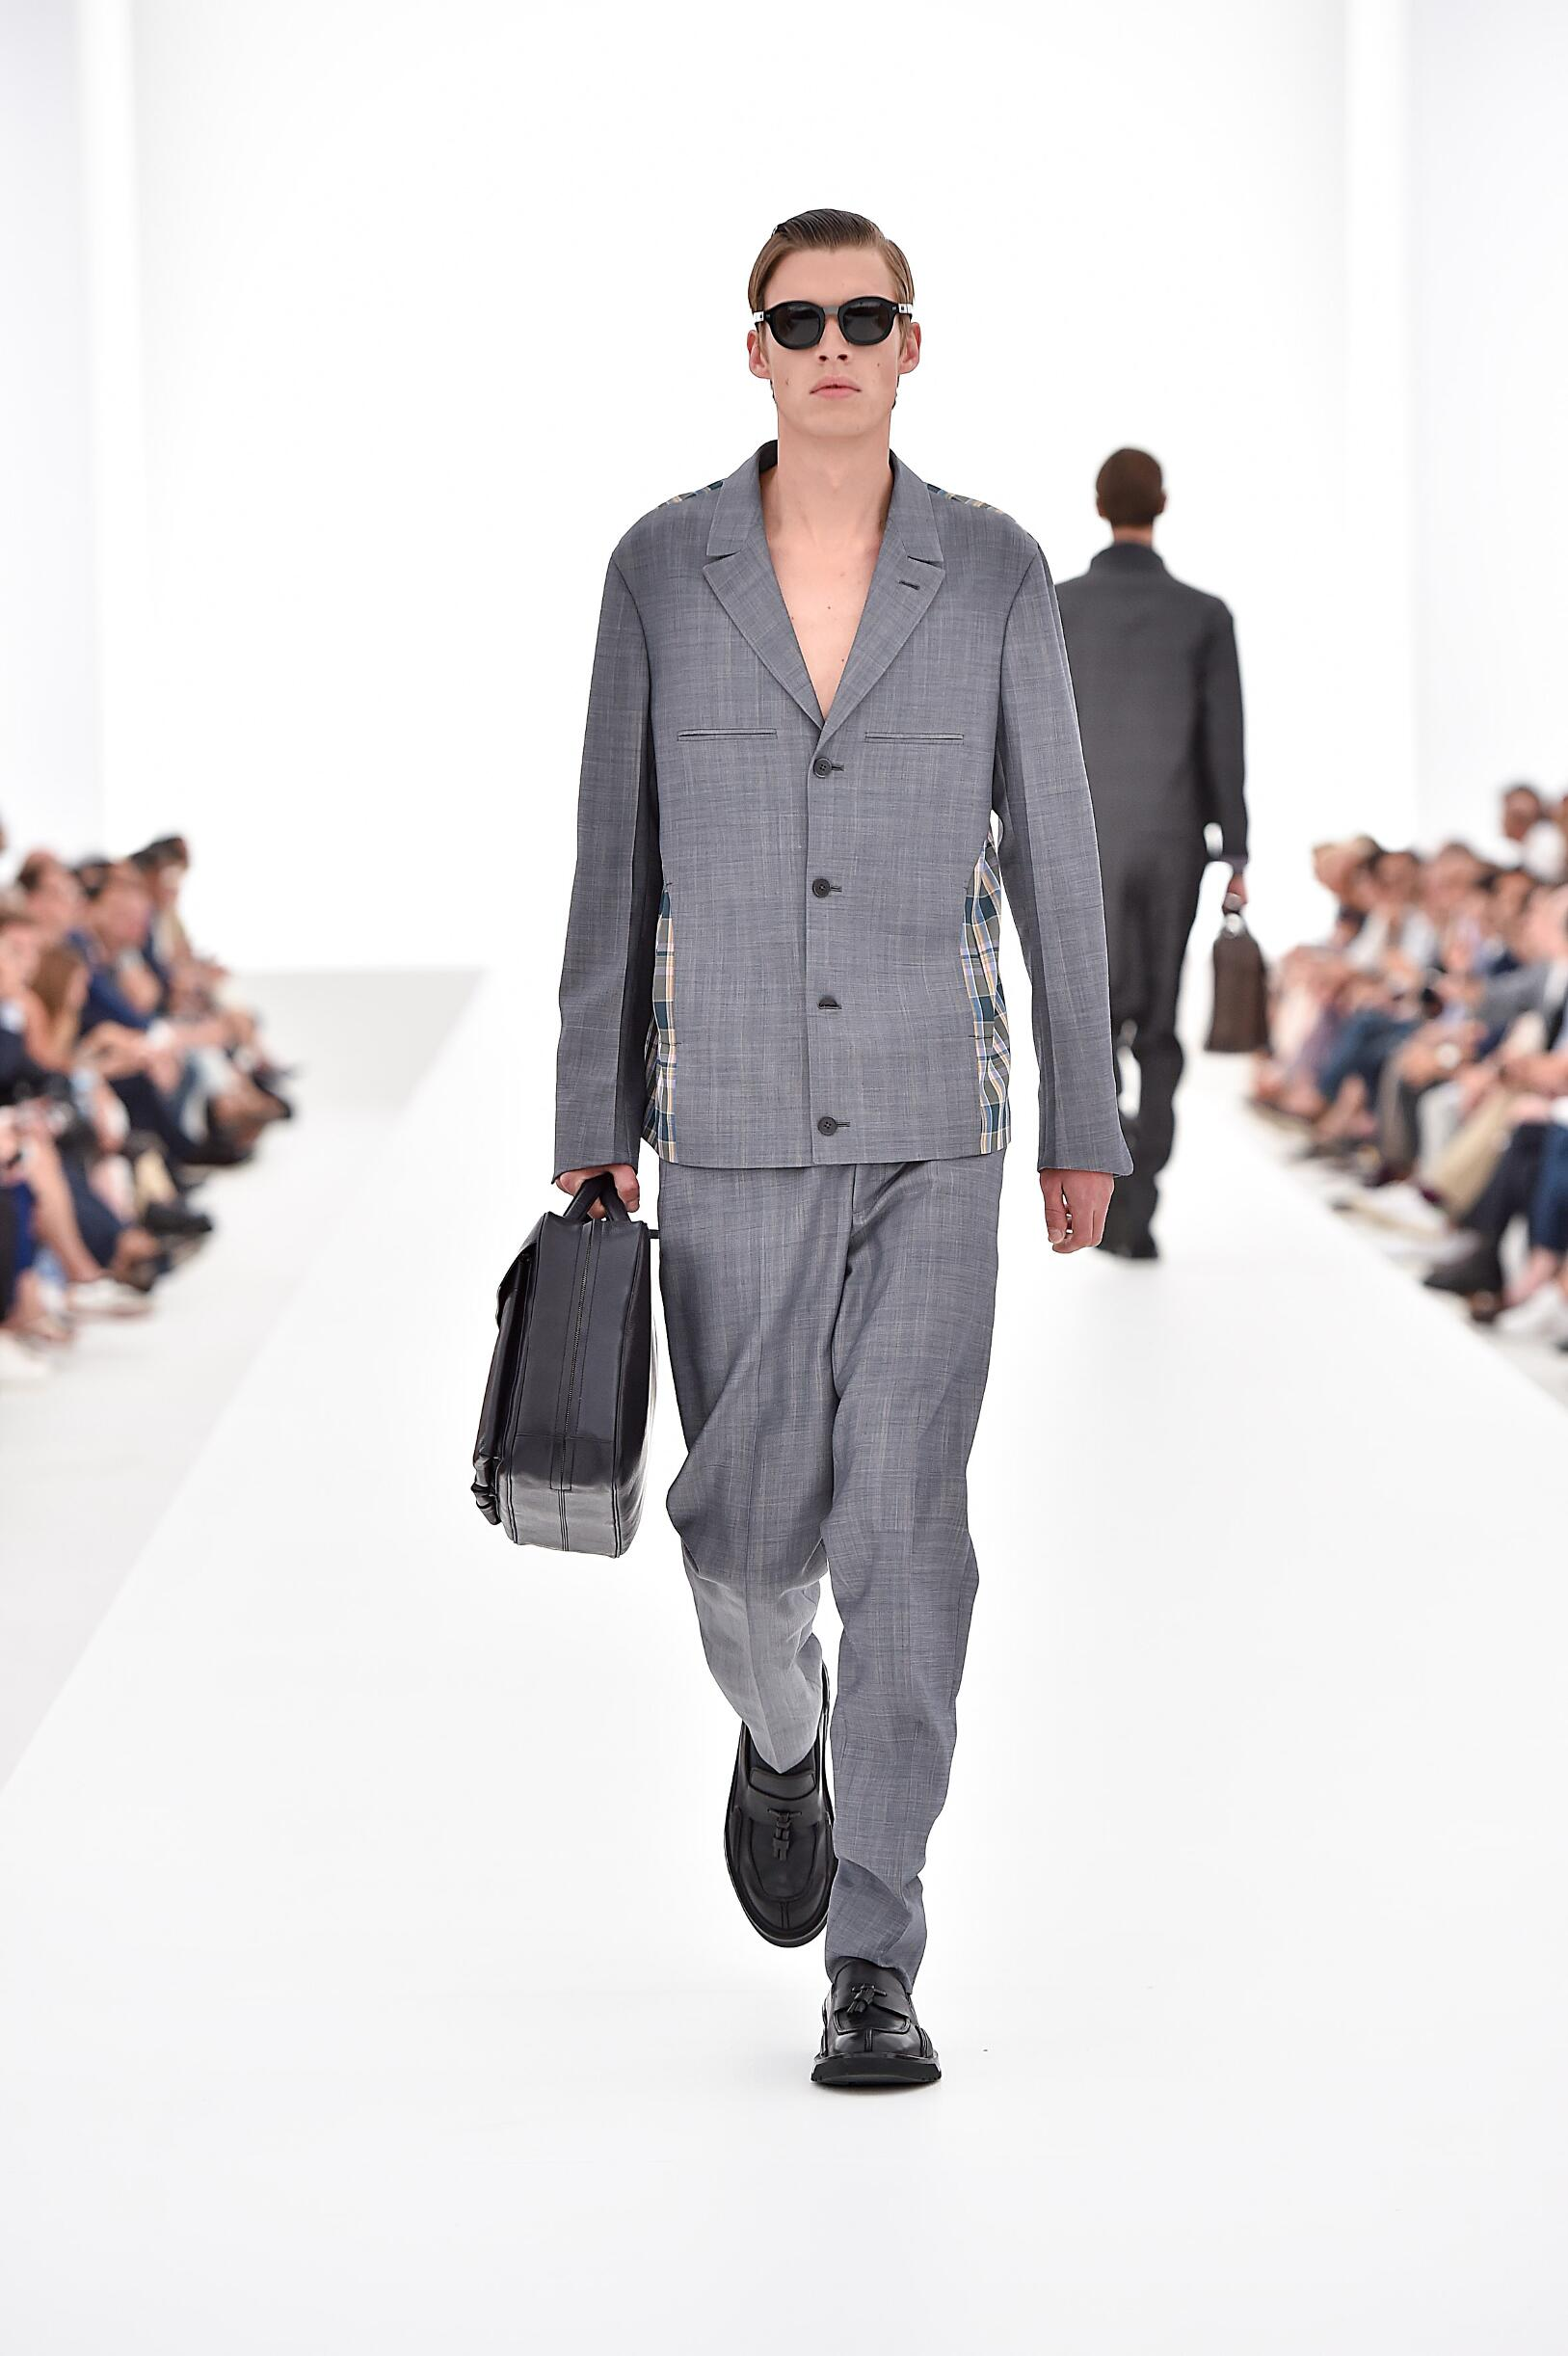 Fashion Menswear Ermenegildo Zegna Couture Collection Catwalk